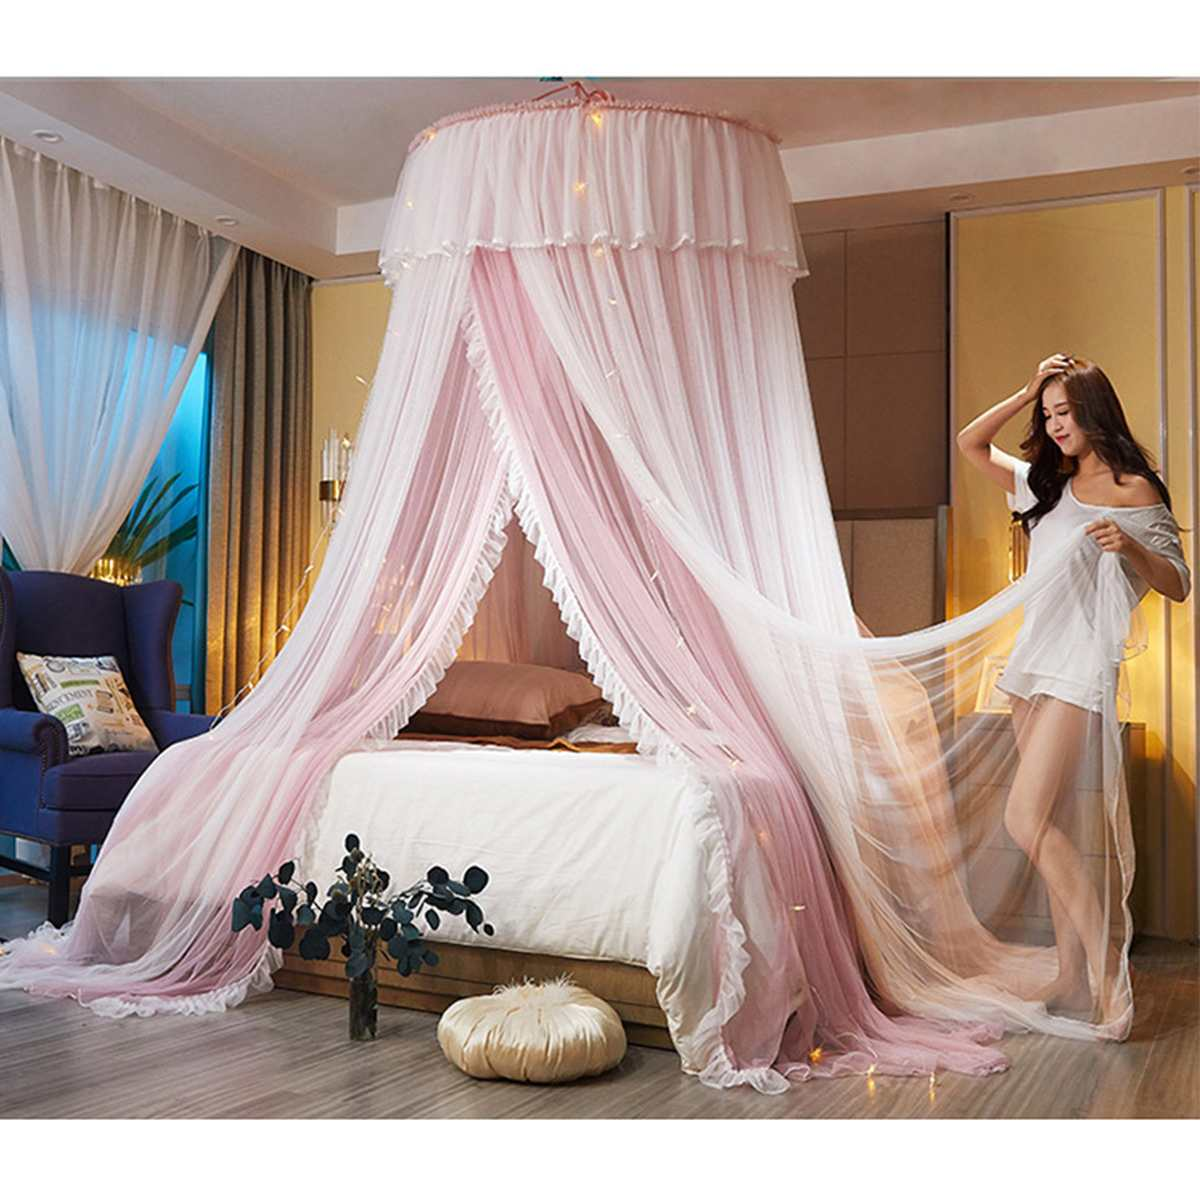 Hanging Dome Mosquito Net Bed Canopy Romantic Double Layer Yarn Bed Valance Anti-mosquito Home Textiles Decor Bedcover Curtain